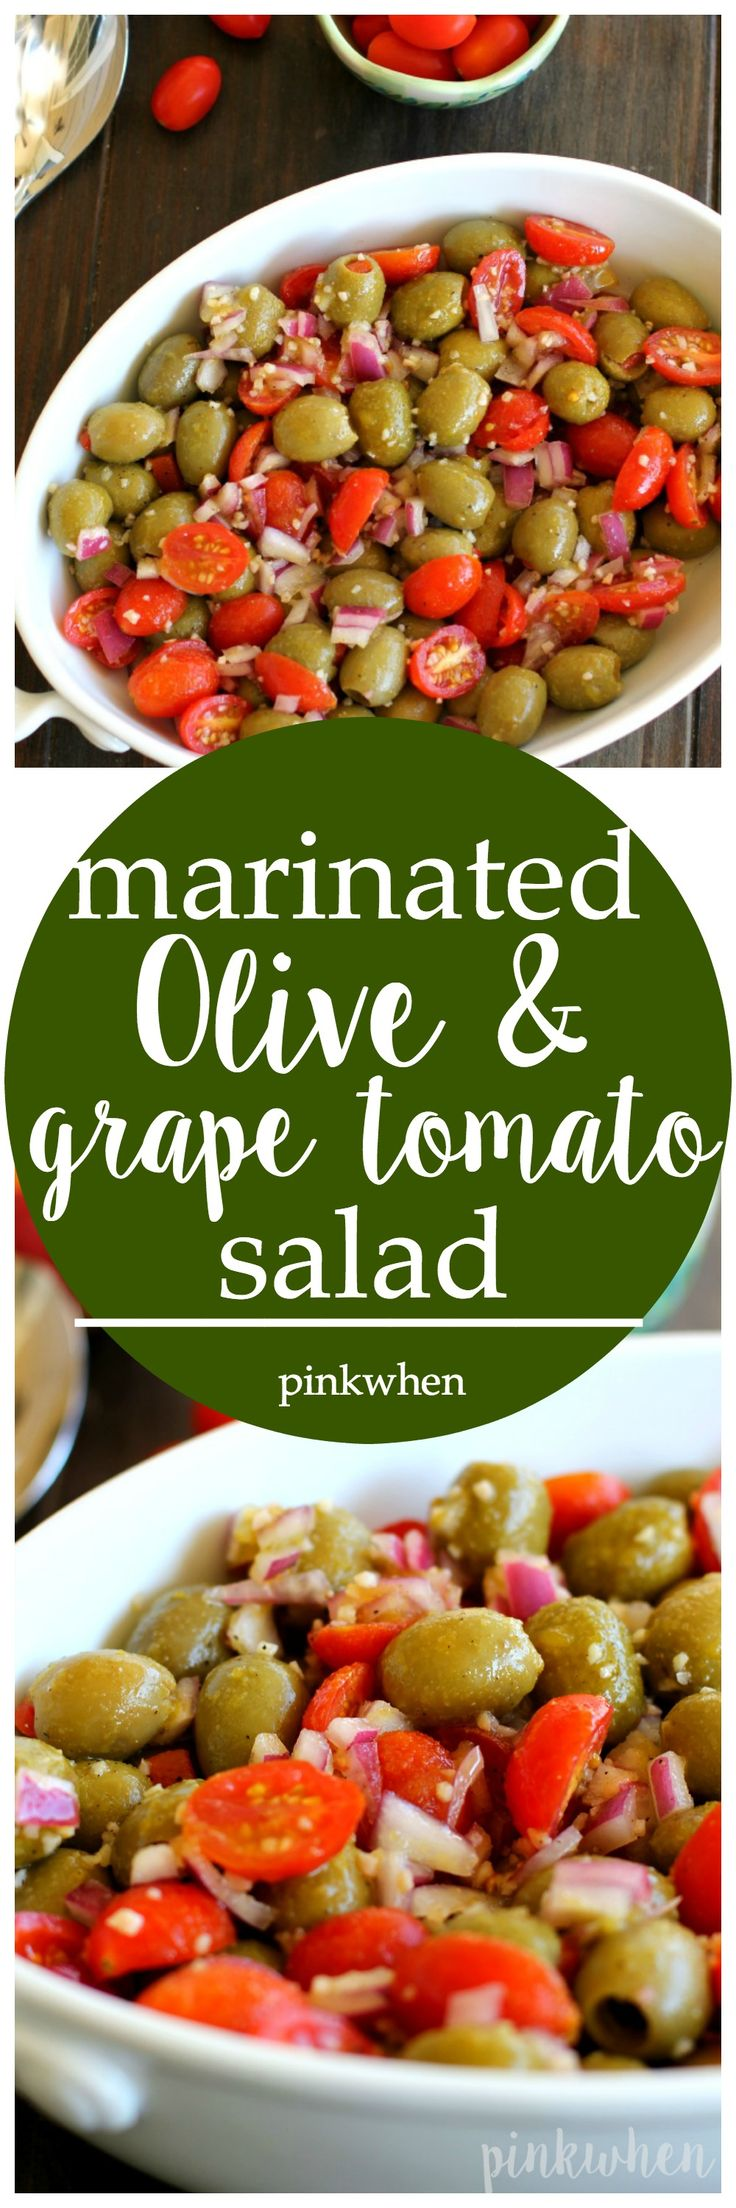 Marinated Olive and Grape Tomato Salad